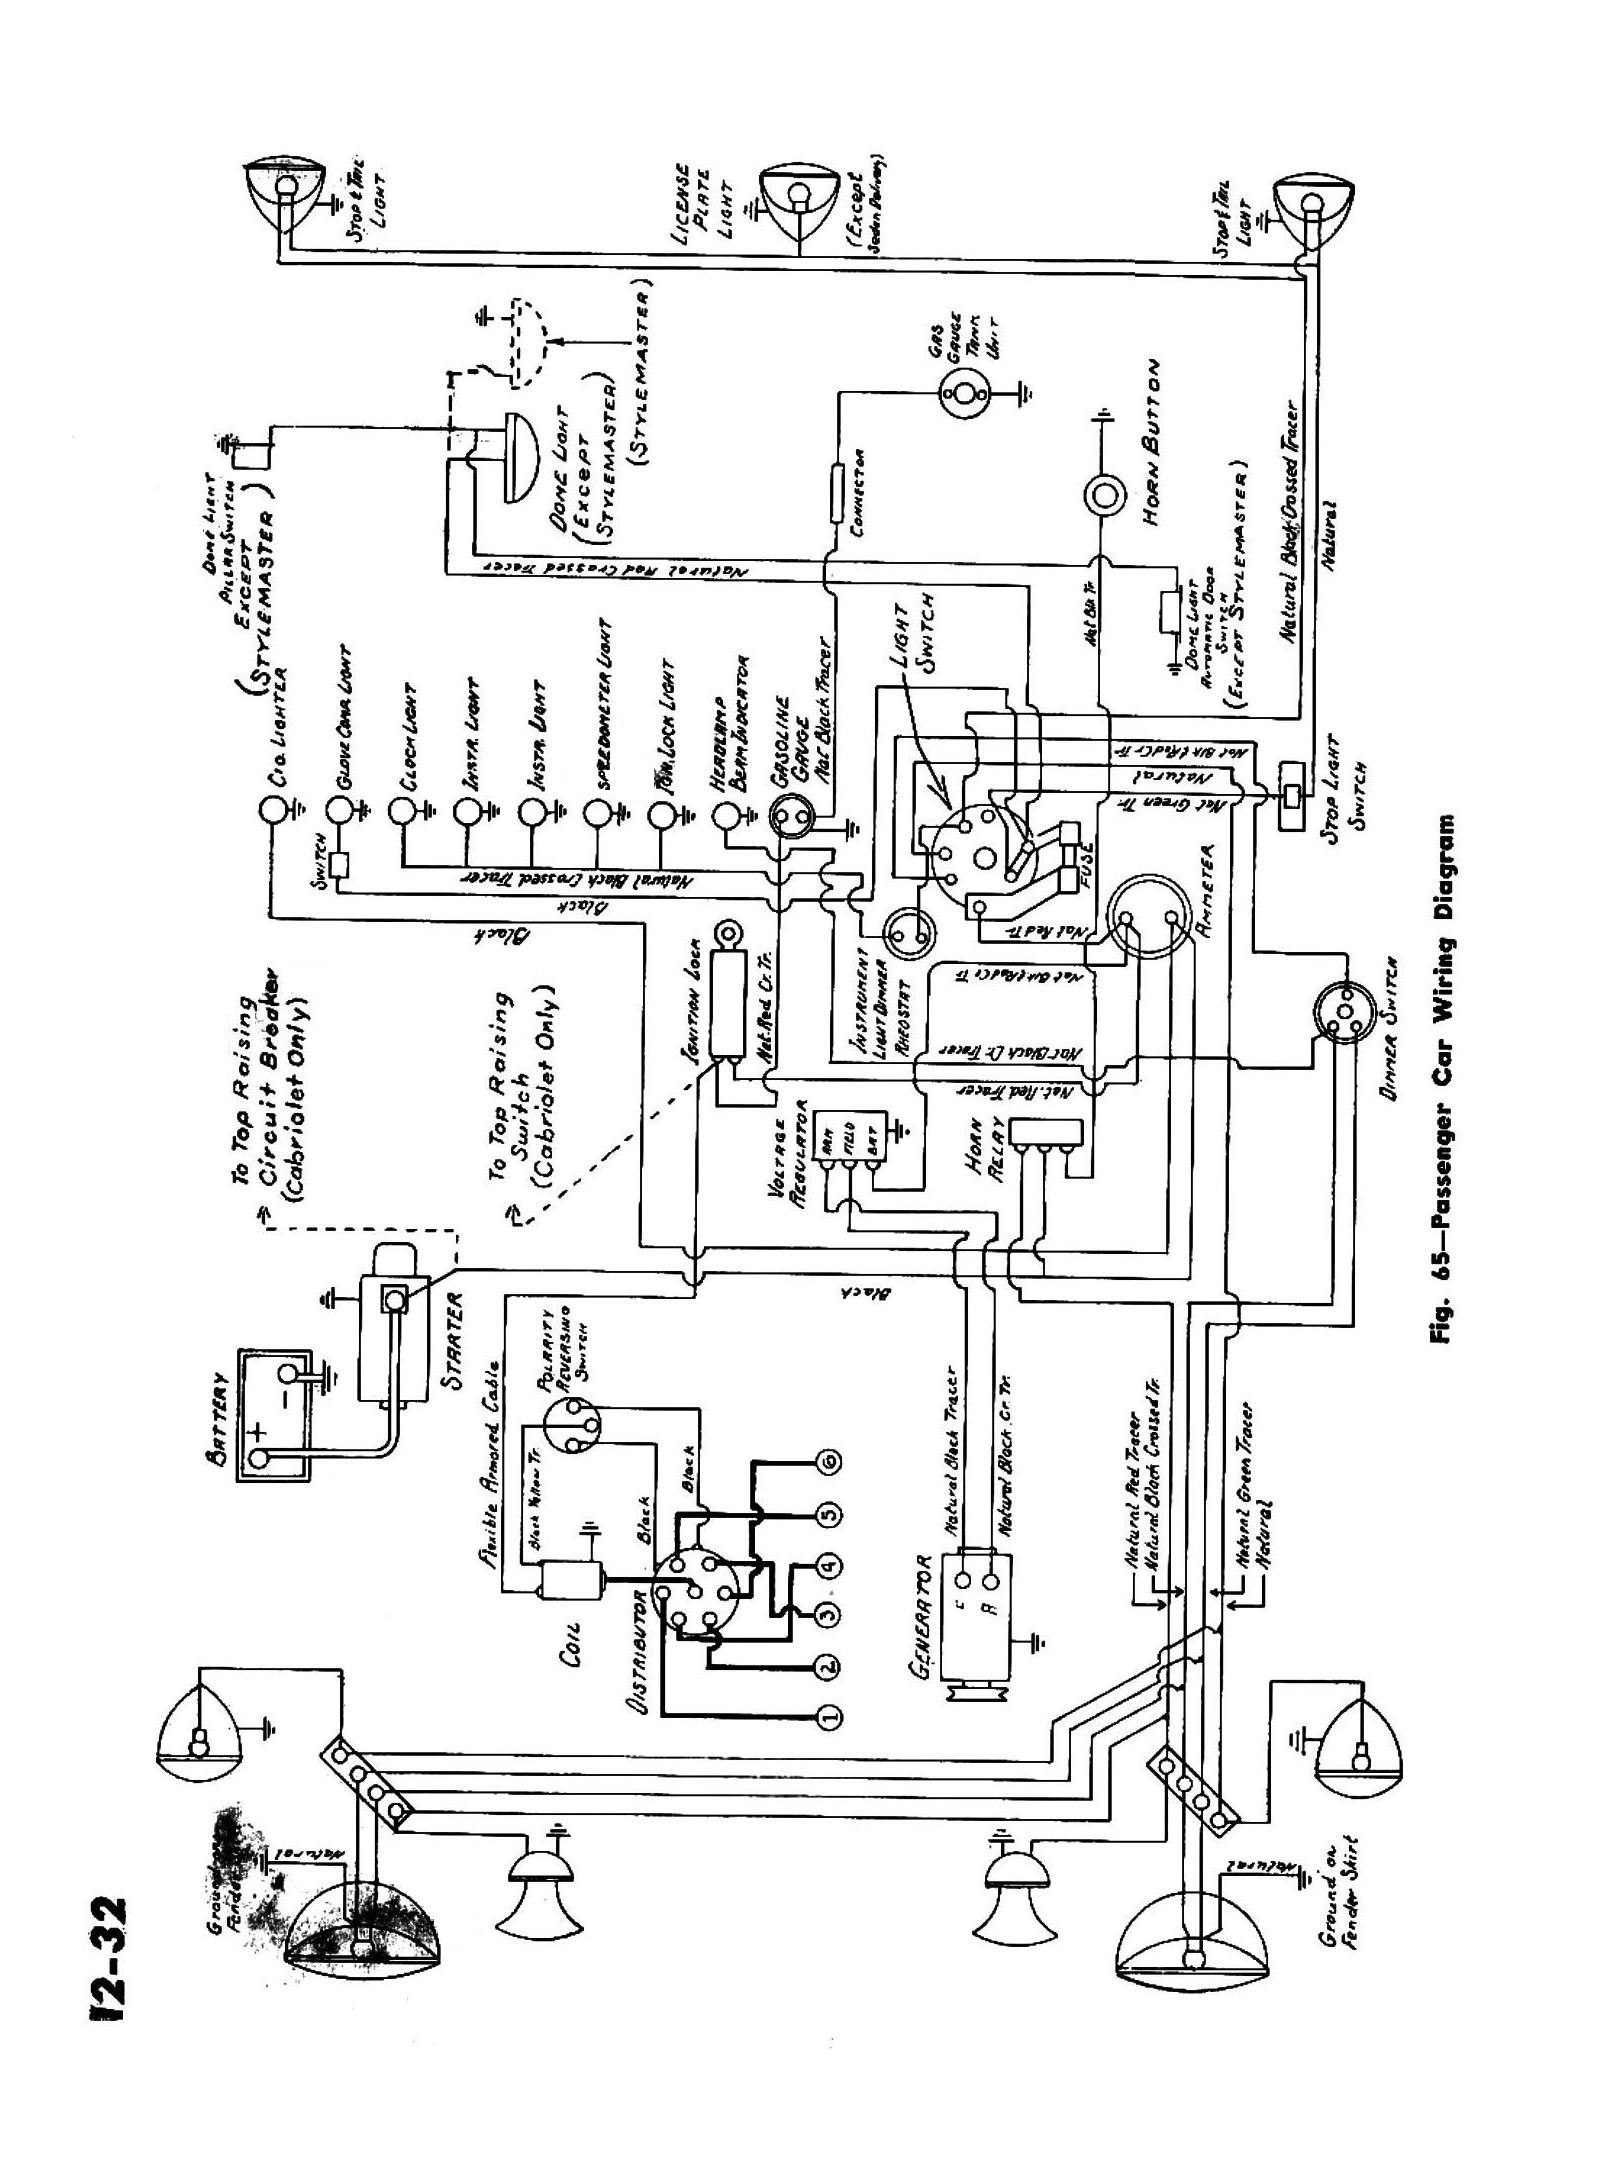 chevy wiring diagrams 1998 chevy truck wiring diagram 1946, 1946 car wiring · 1946 passenger car wiring